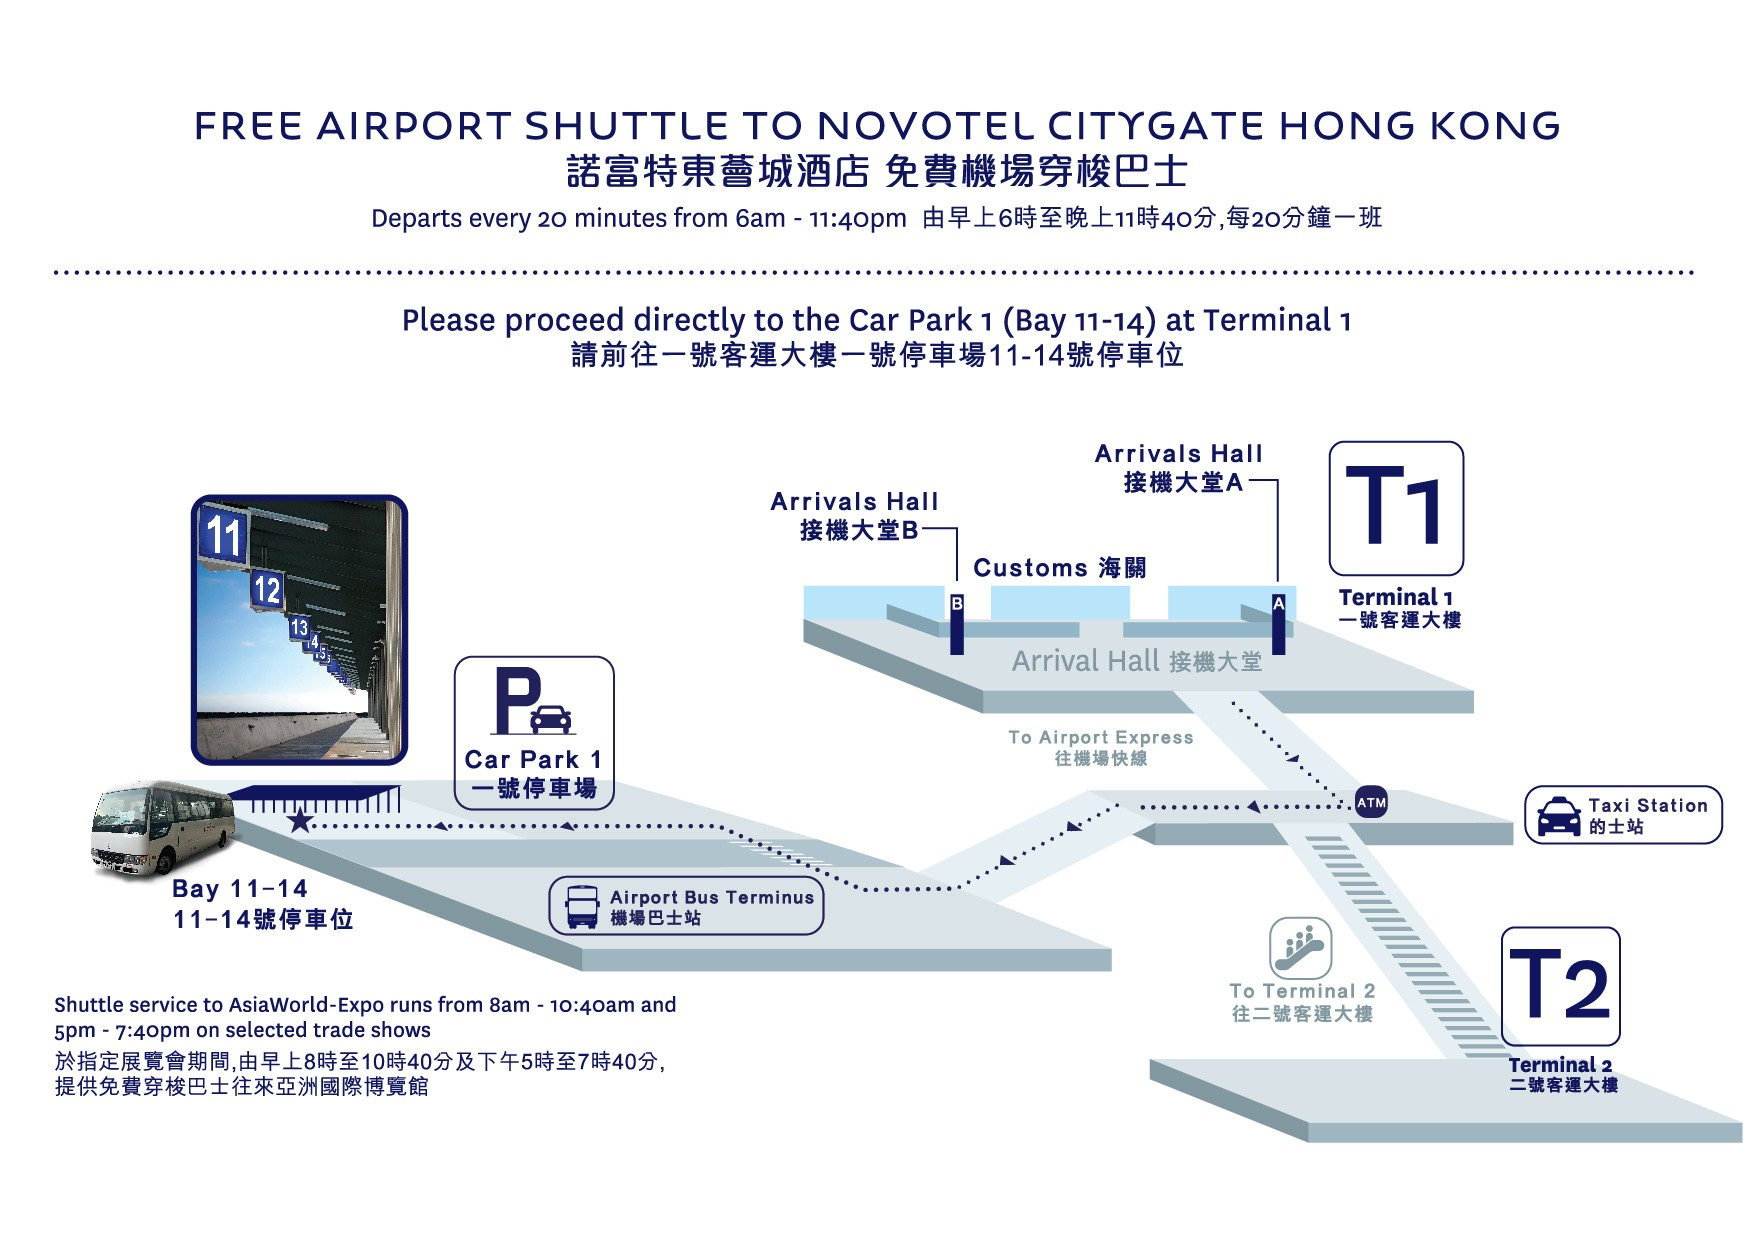 Free Airport Shuttle to Novotel Citygate Hong Kong